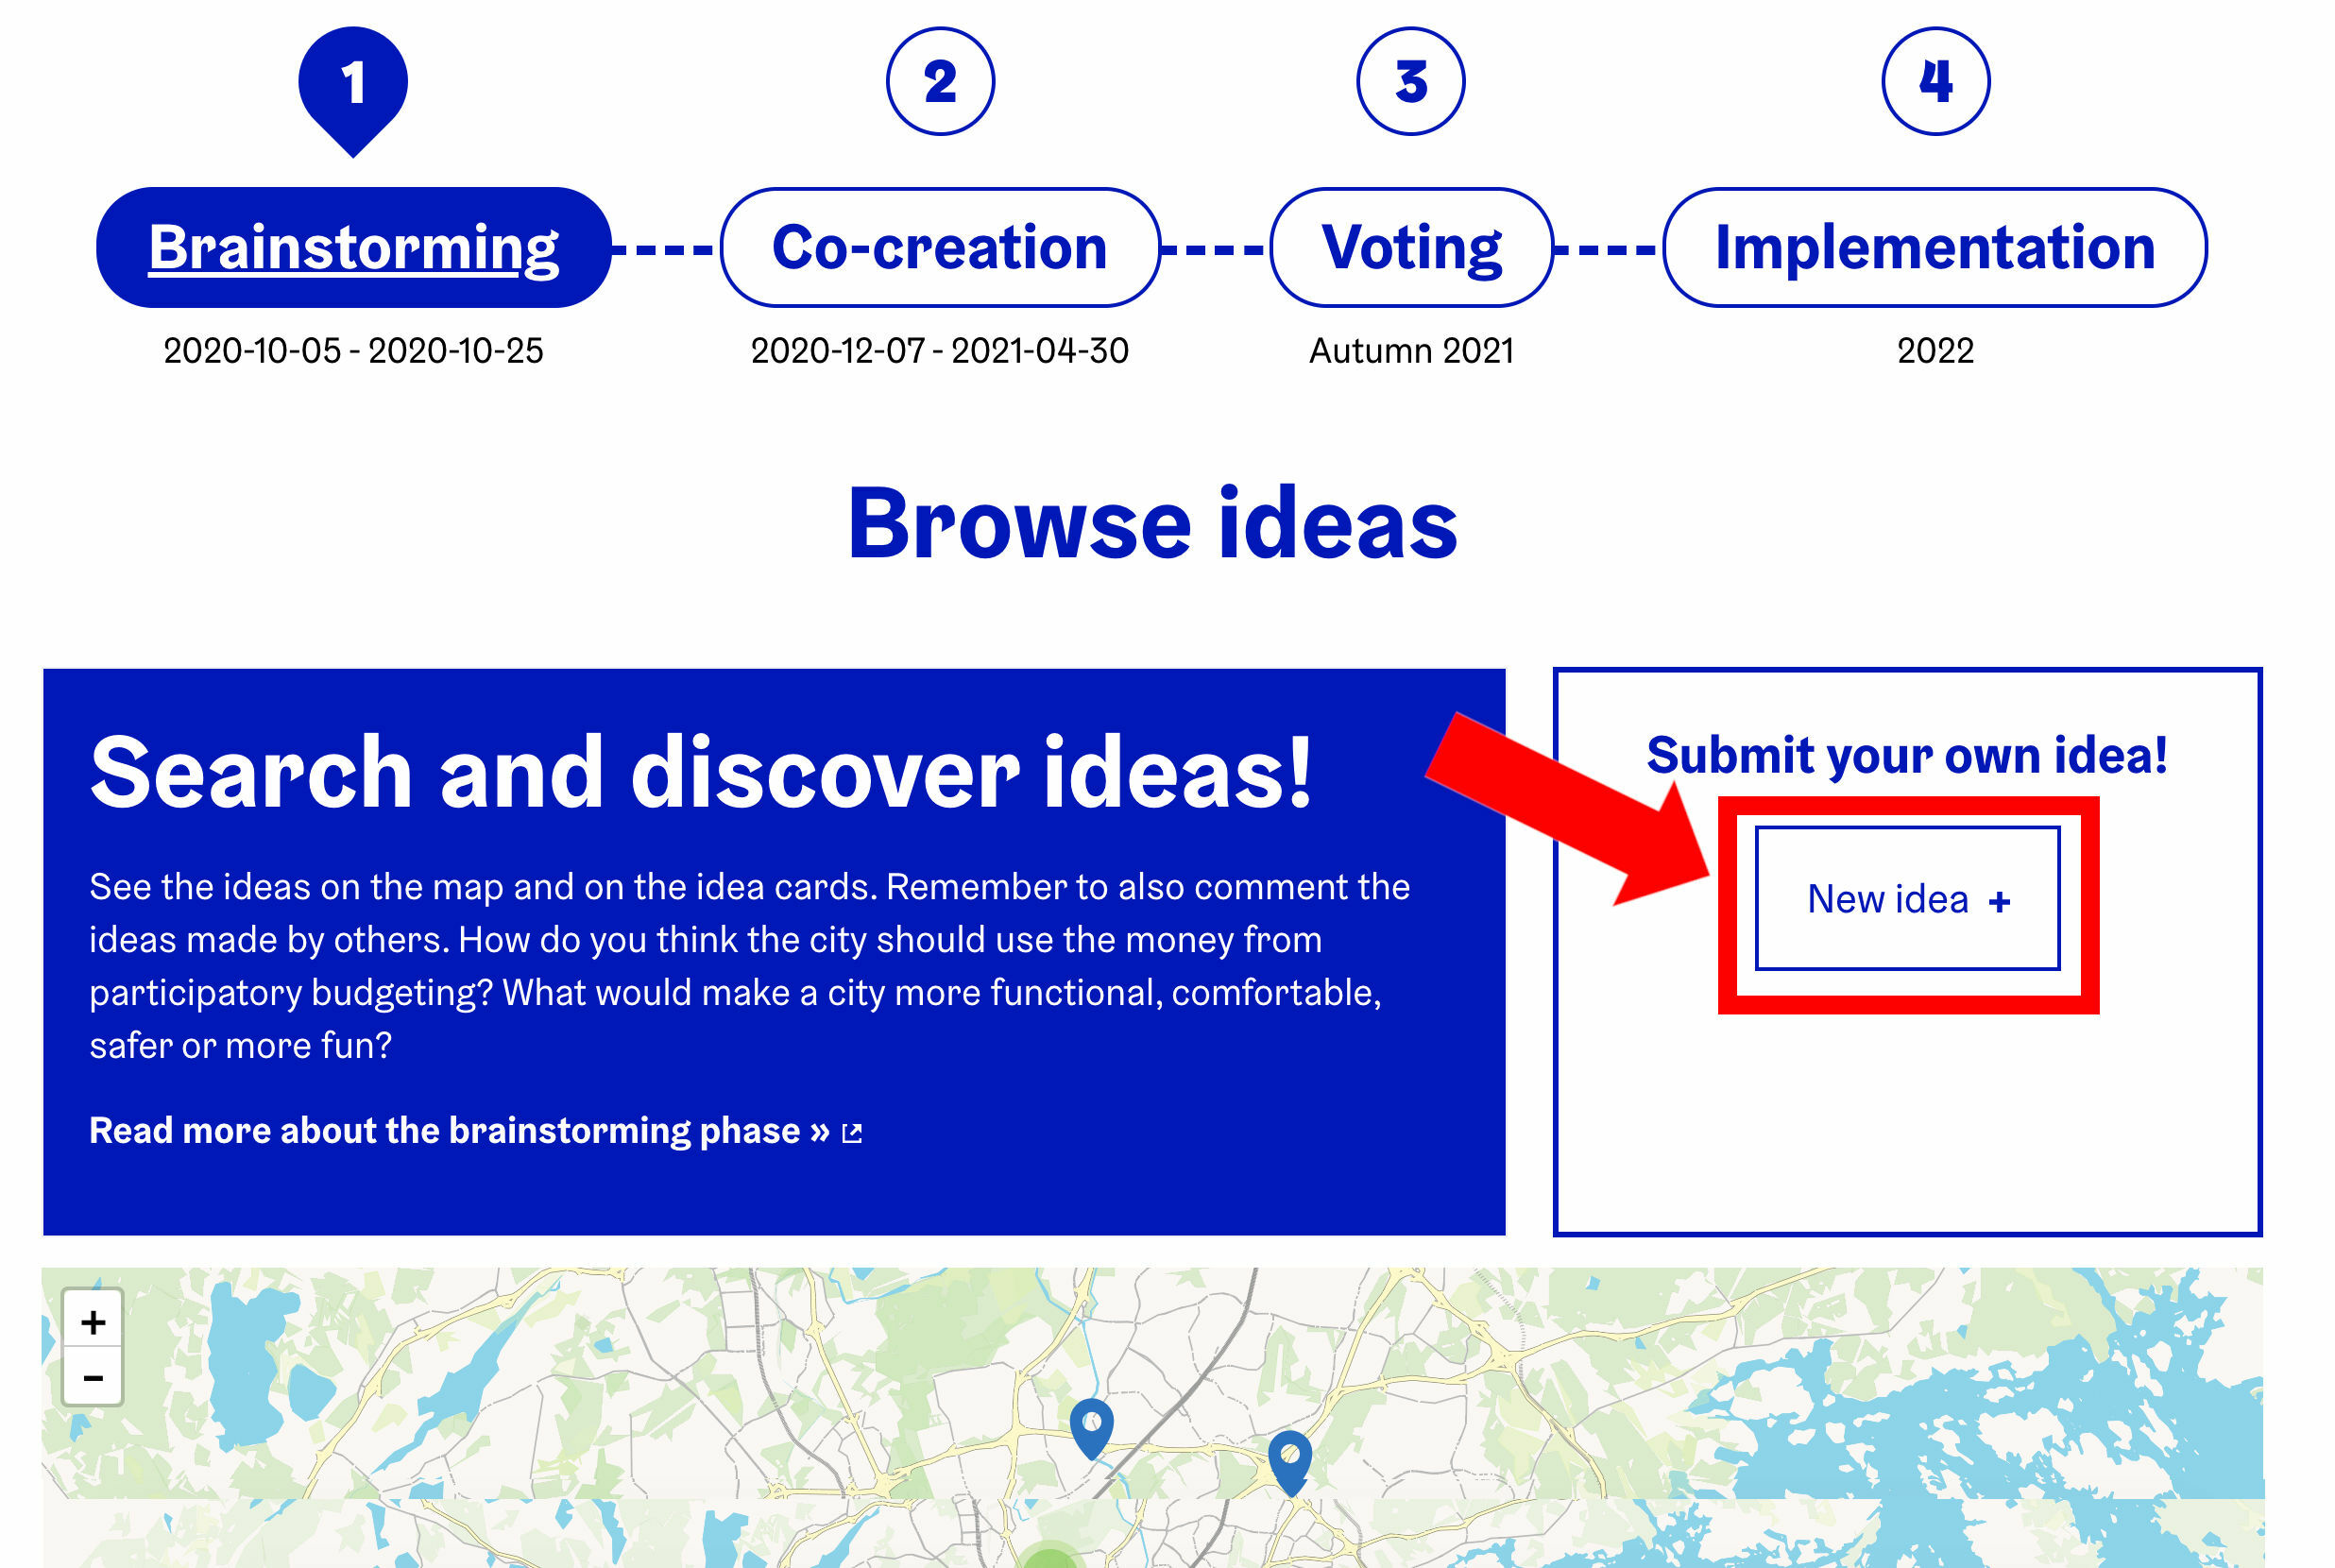 'New idea' button on the 'Brainstorming' page